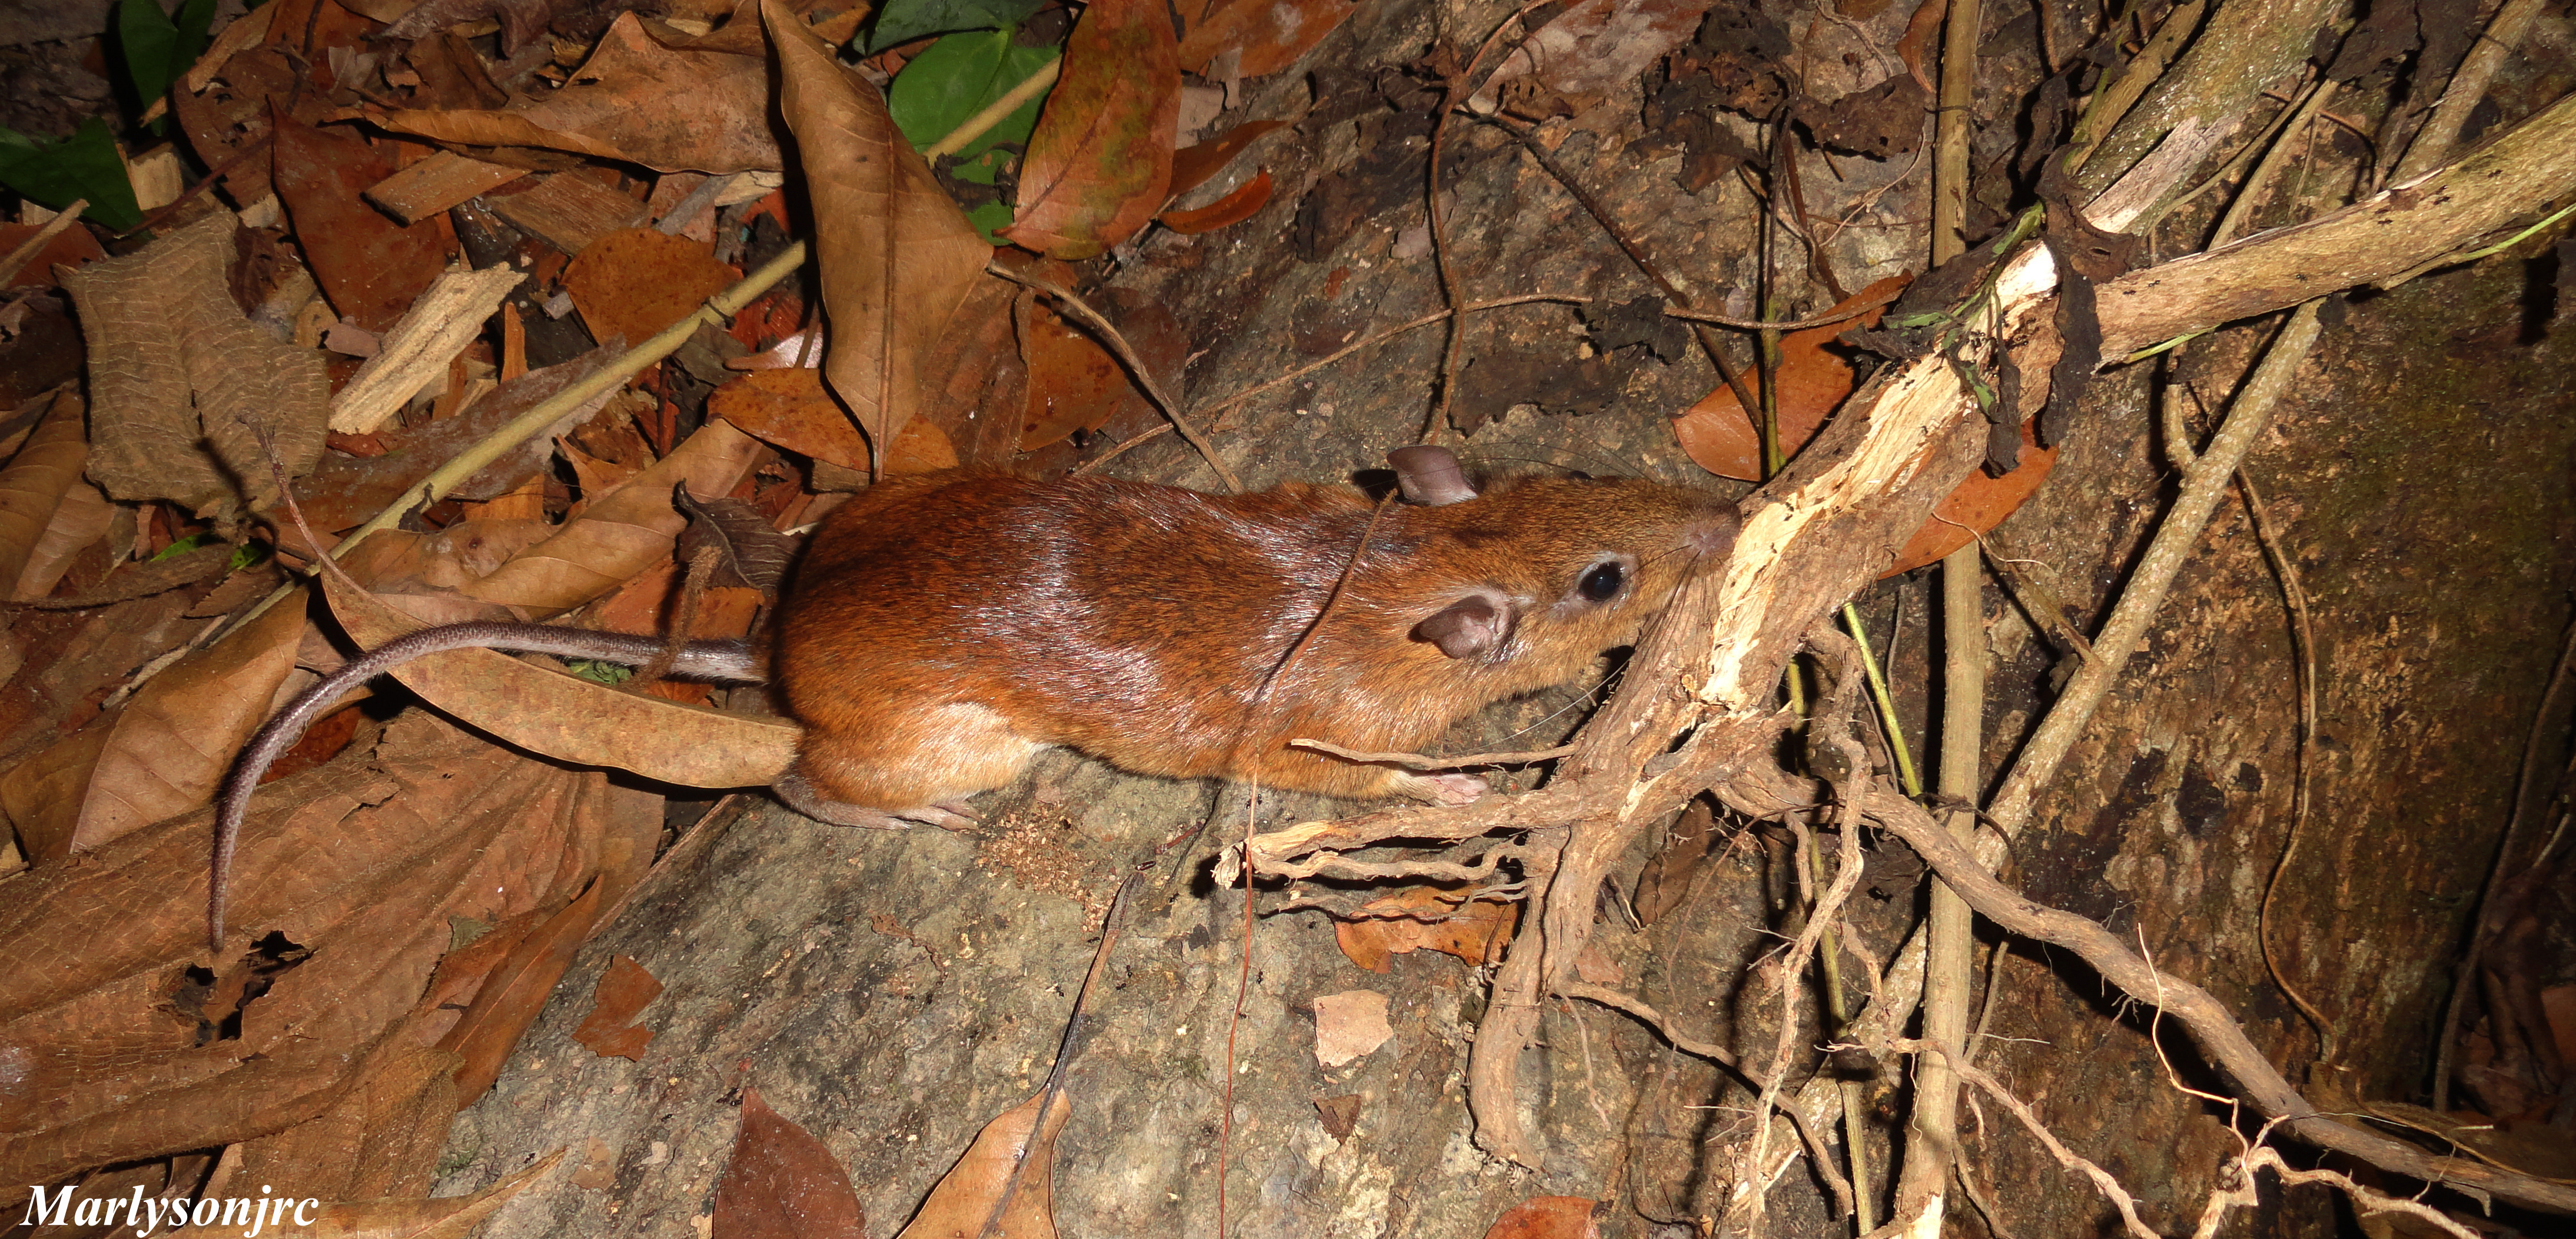 Image of spiny rat